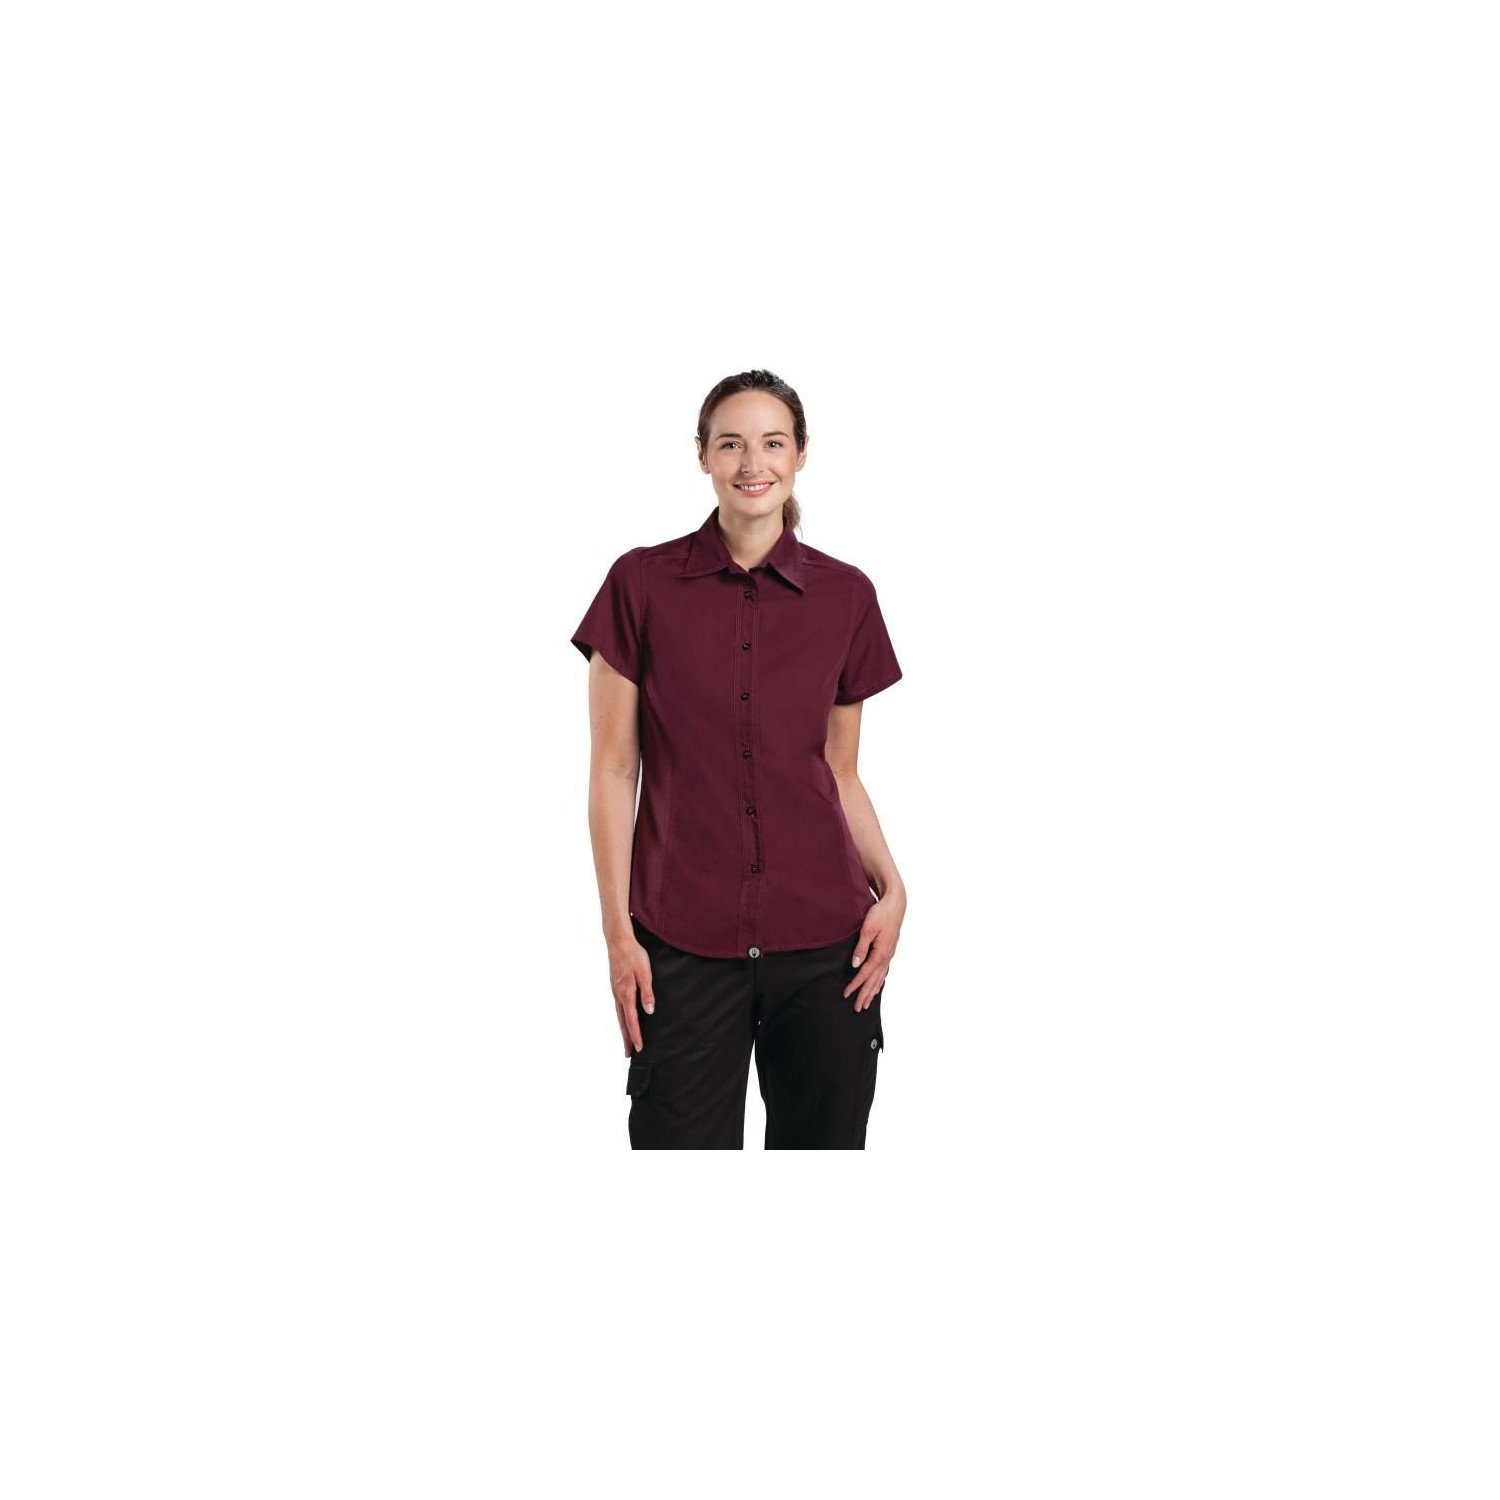 Chemise aubergine femme Cool Vent Chef Works - Taille L CHEF WORKS Nisbets Vêtements